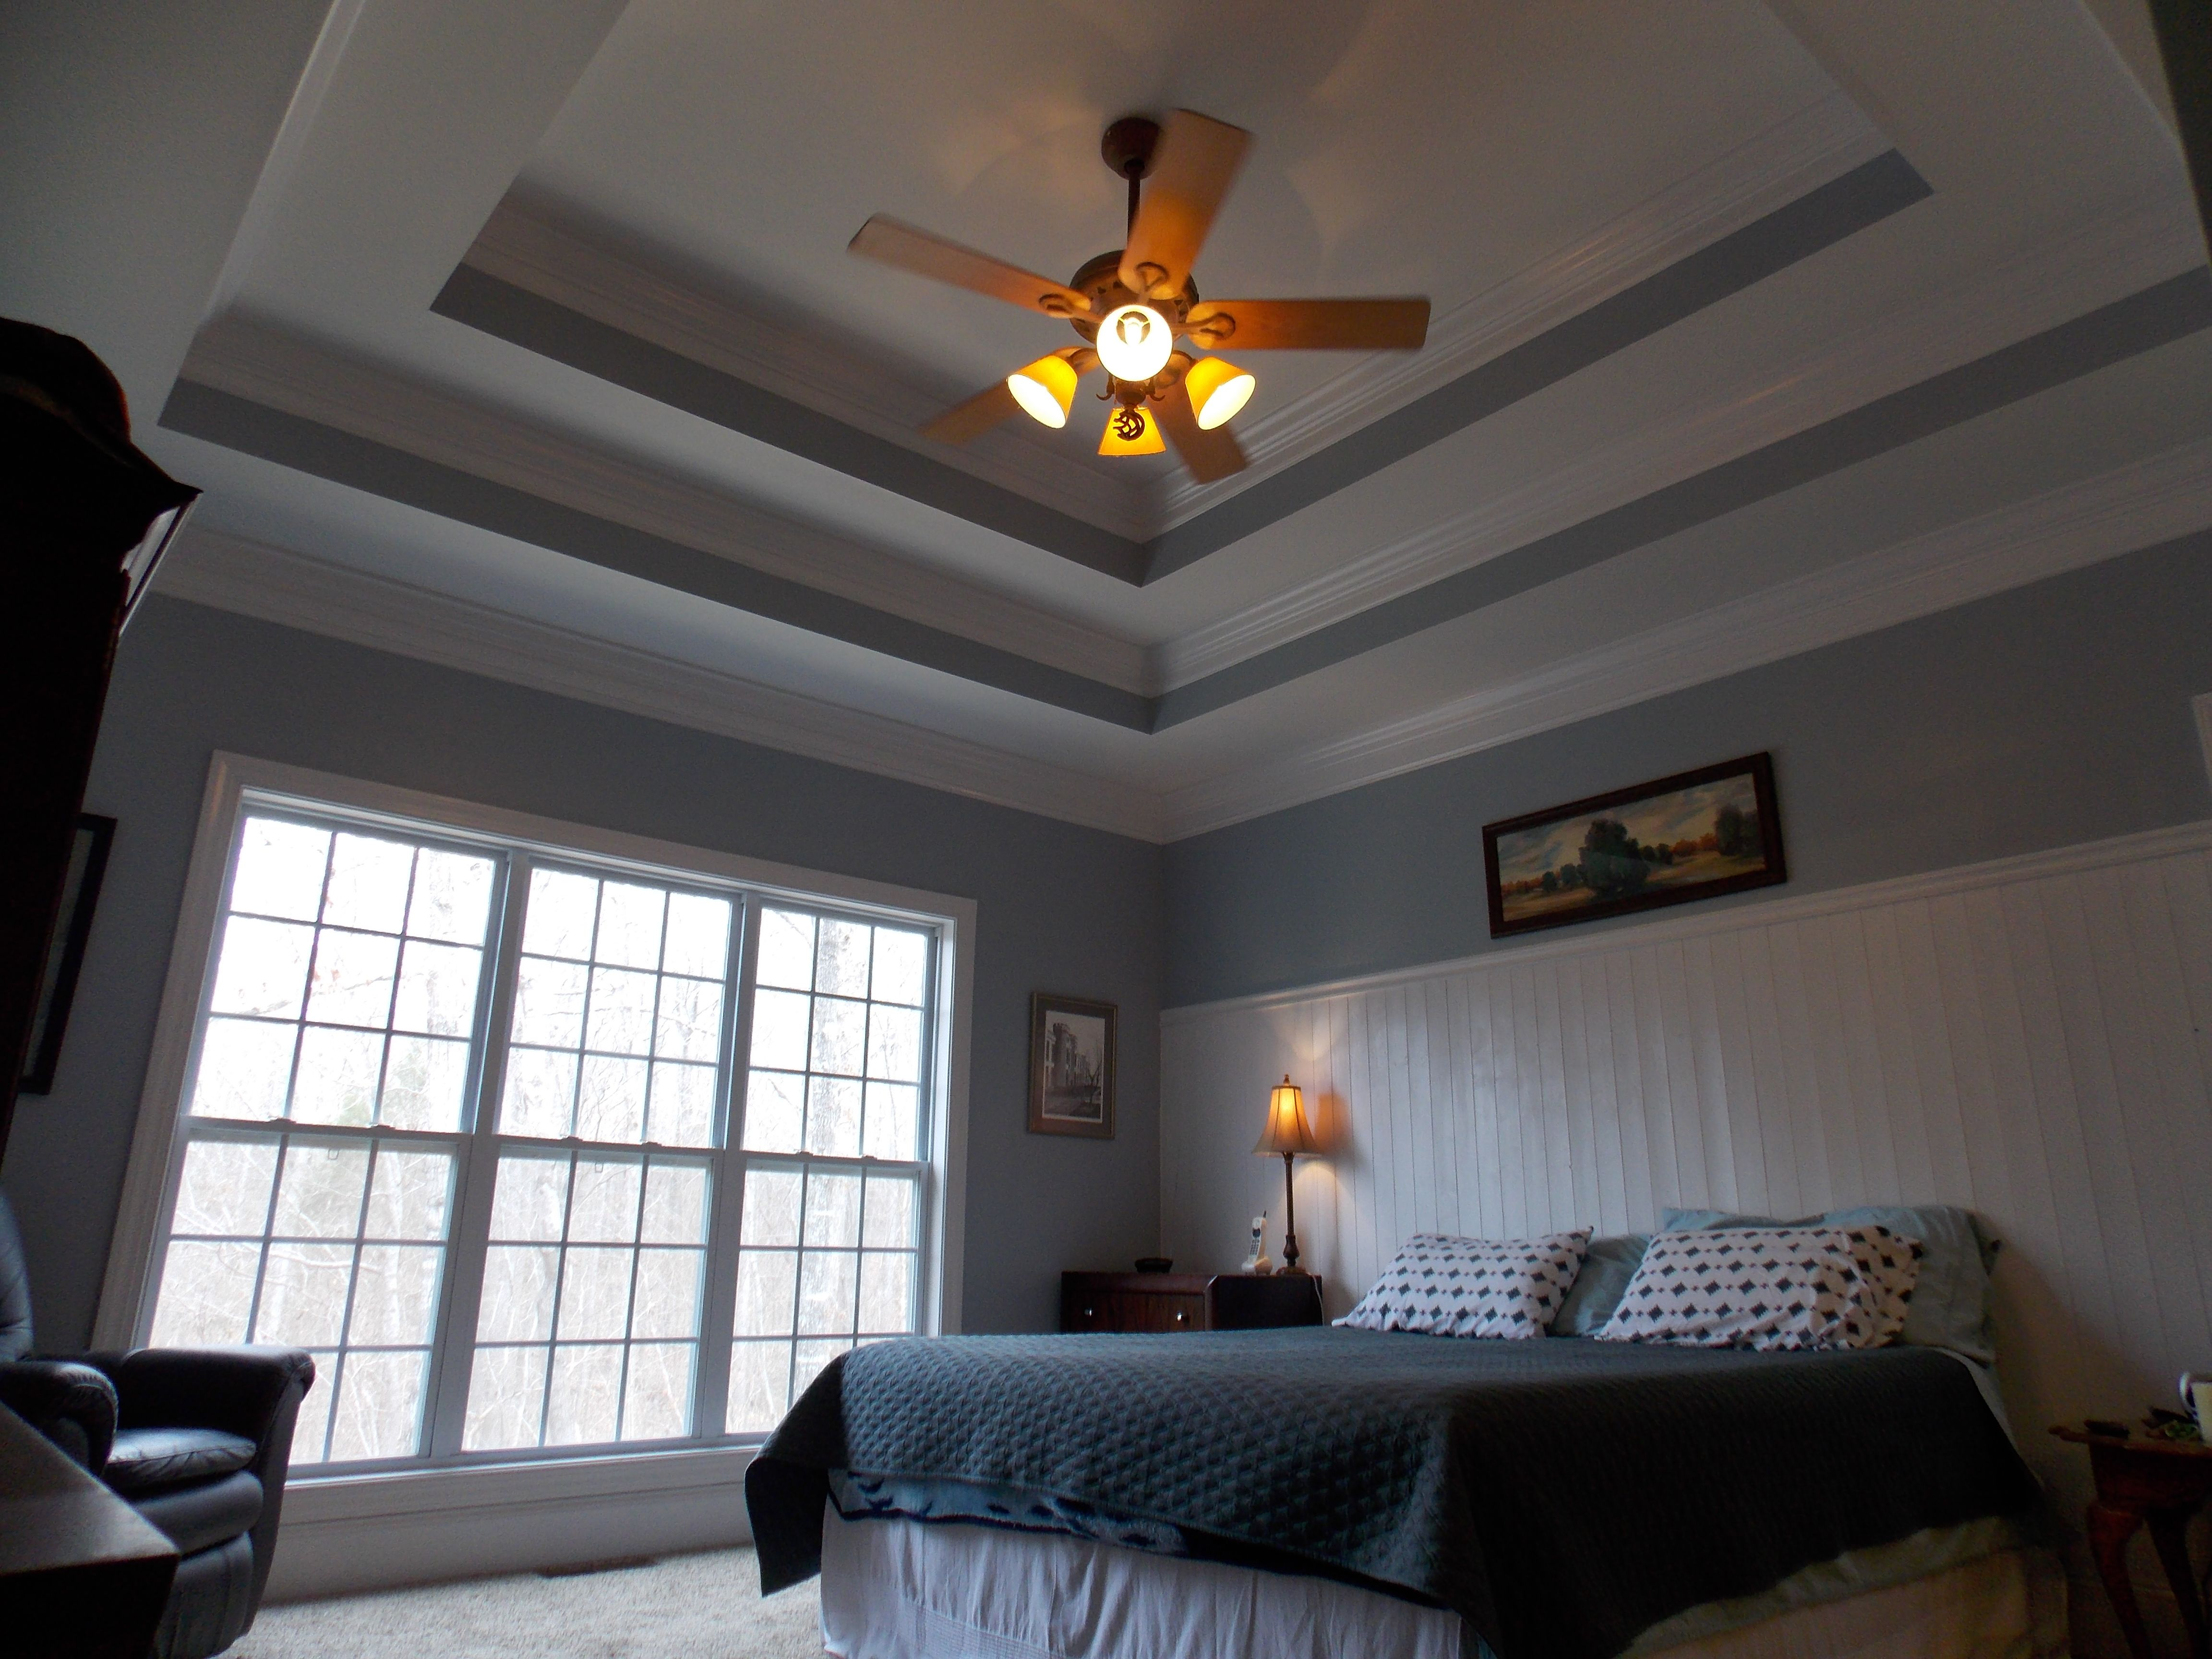 double tray ceilings and bead board wainscoting home decor tray ceiling bedroom painted. Black Bedroom Furniture Sets. Home Design Ideas